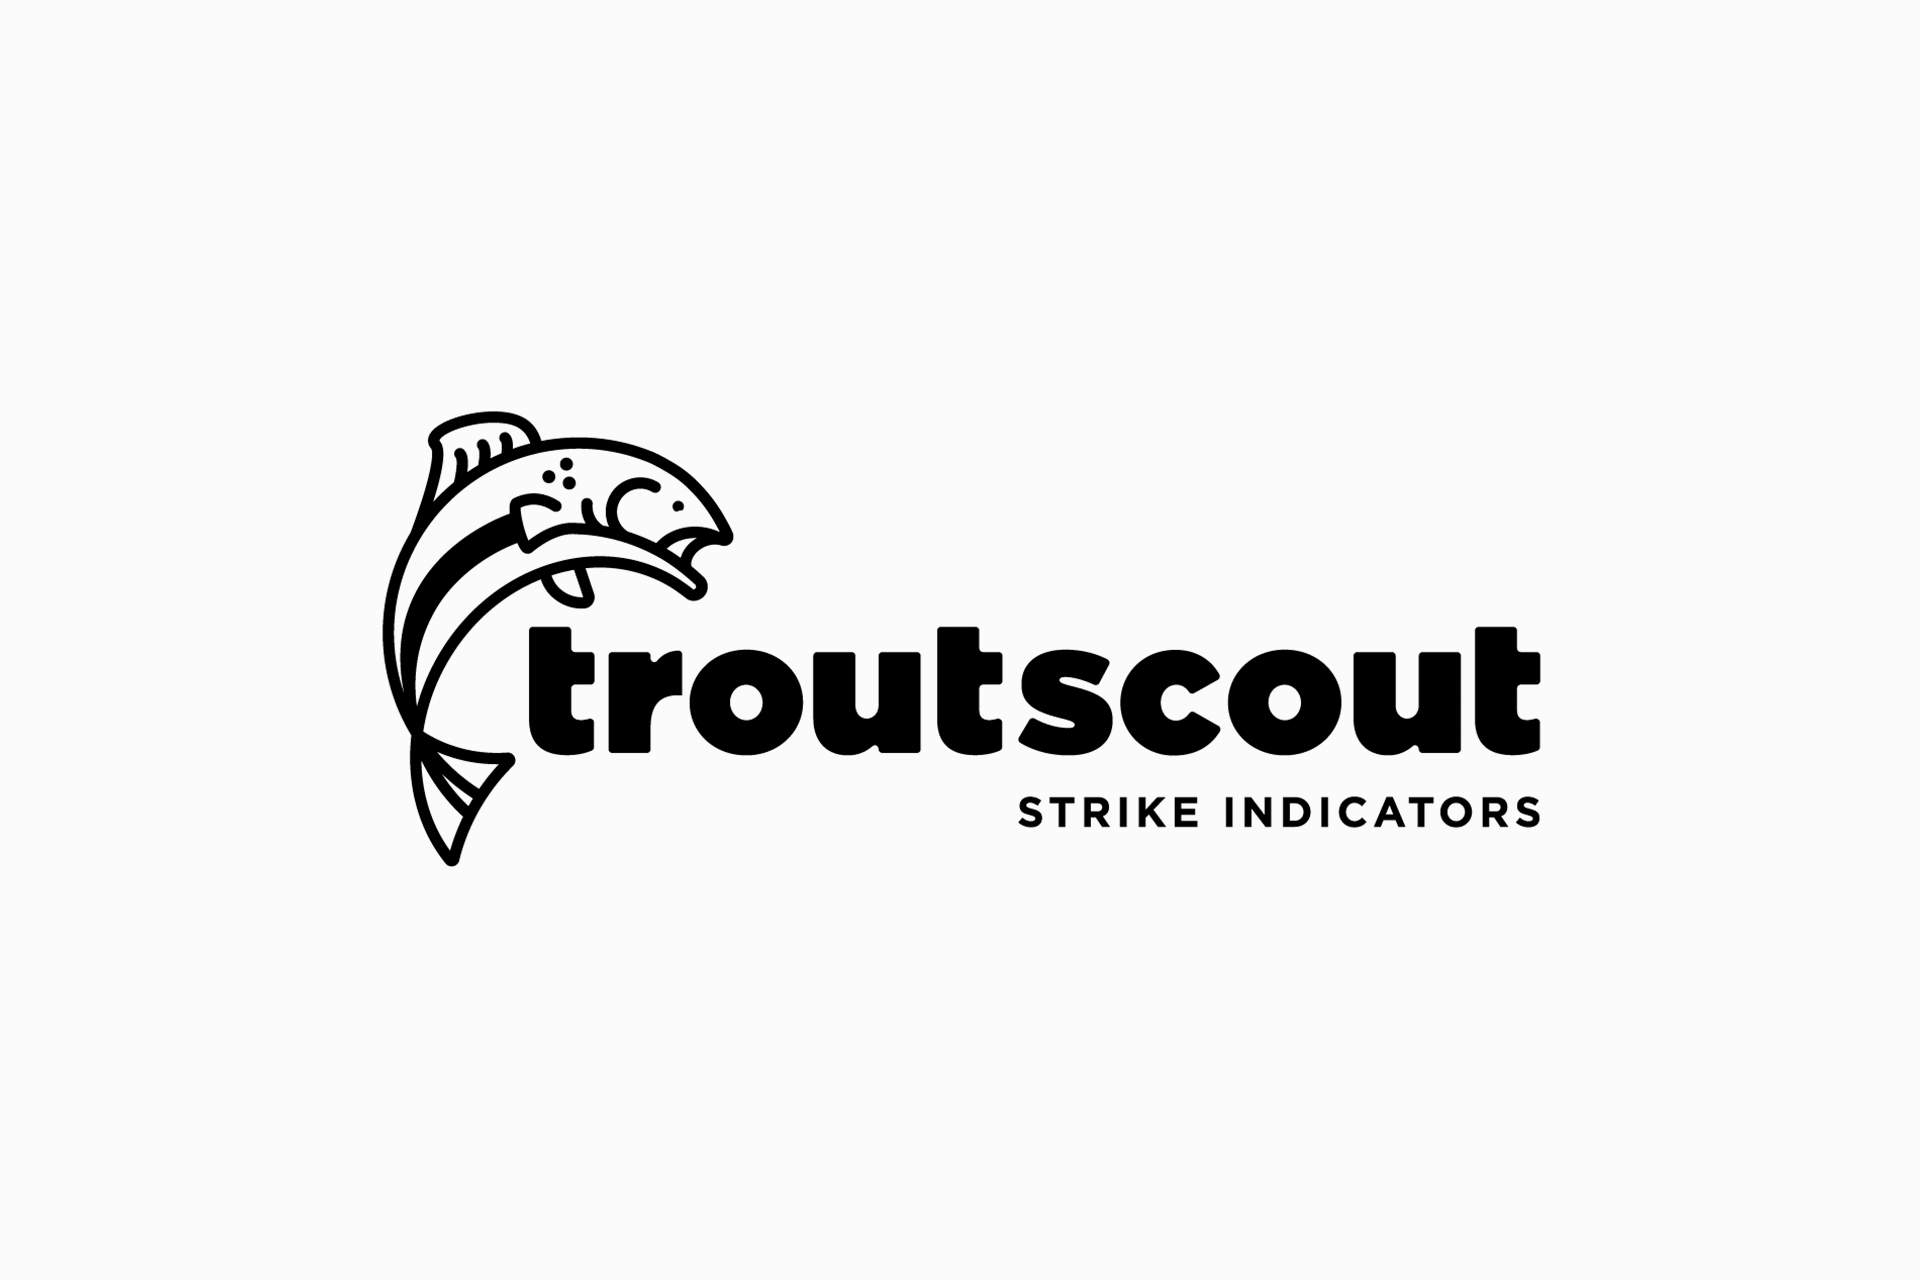 troutscout logo